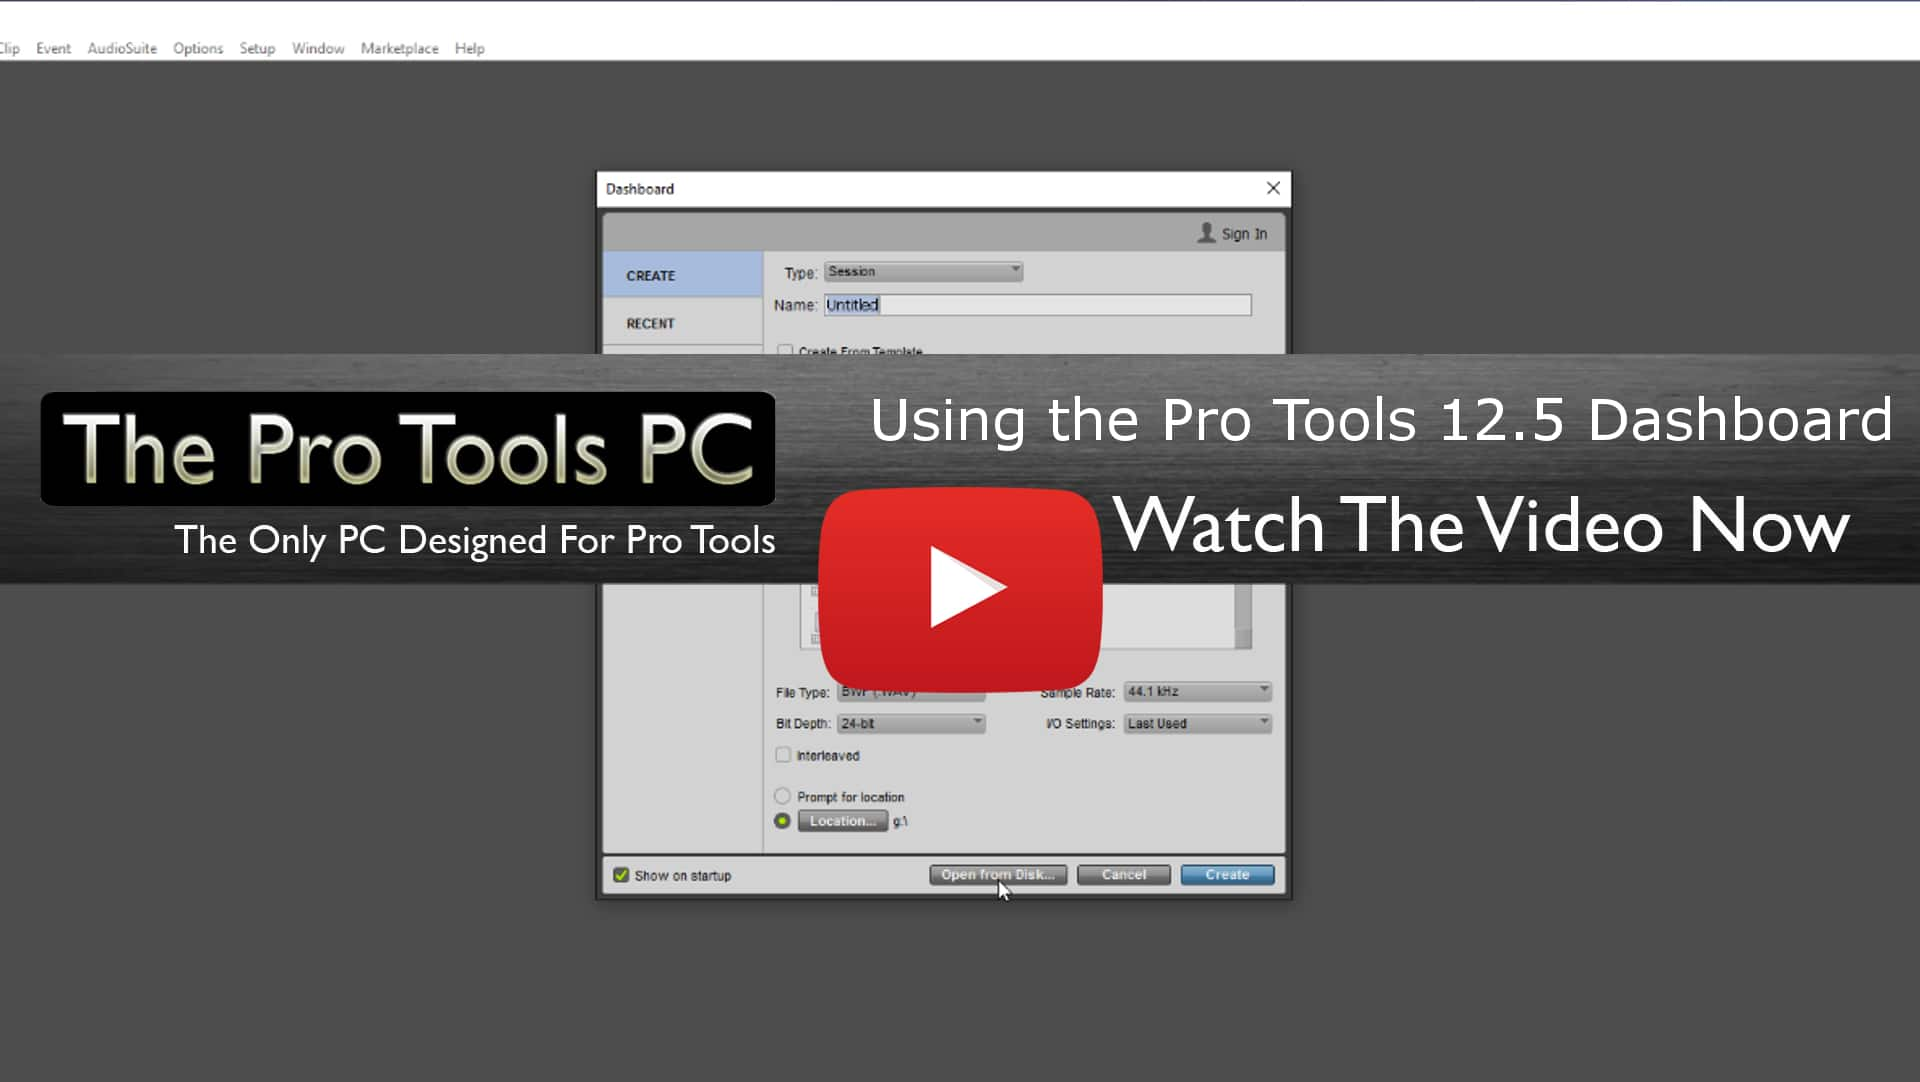 Pro Tools 12.5 Dashboard video tutorial